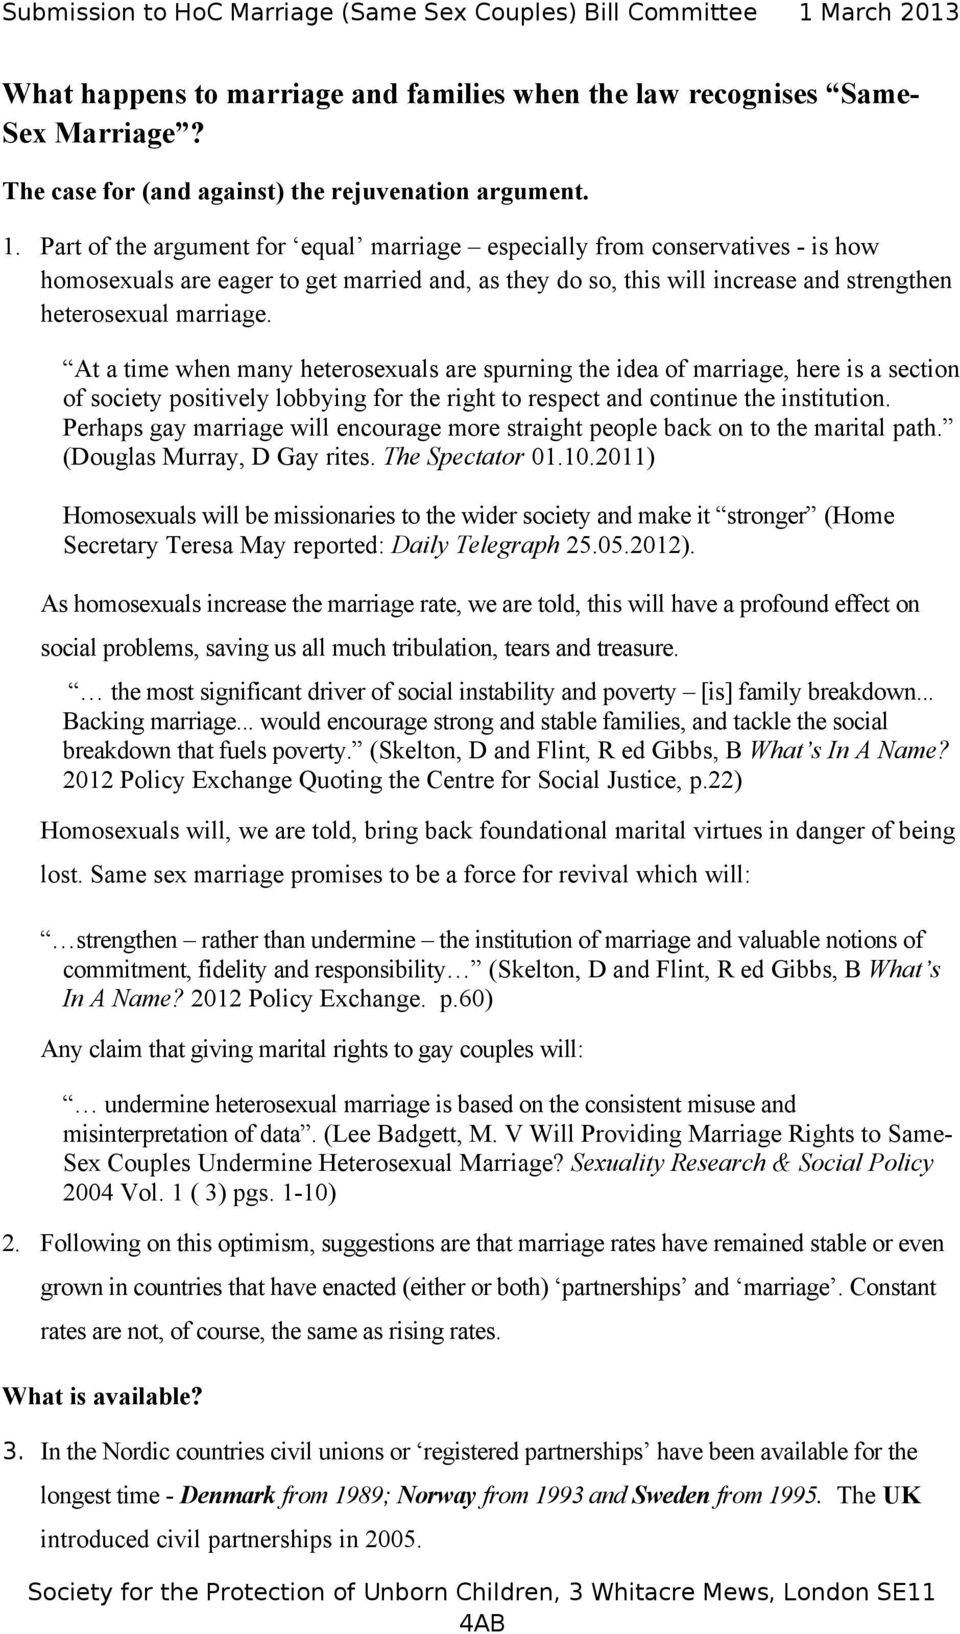 At a time when many heterosexuals are spurning the idea of marriage, here is a section of society positively lobbying for the right to respect and continue the institution.